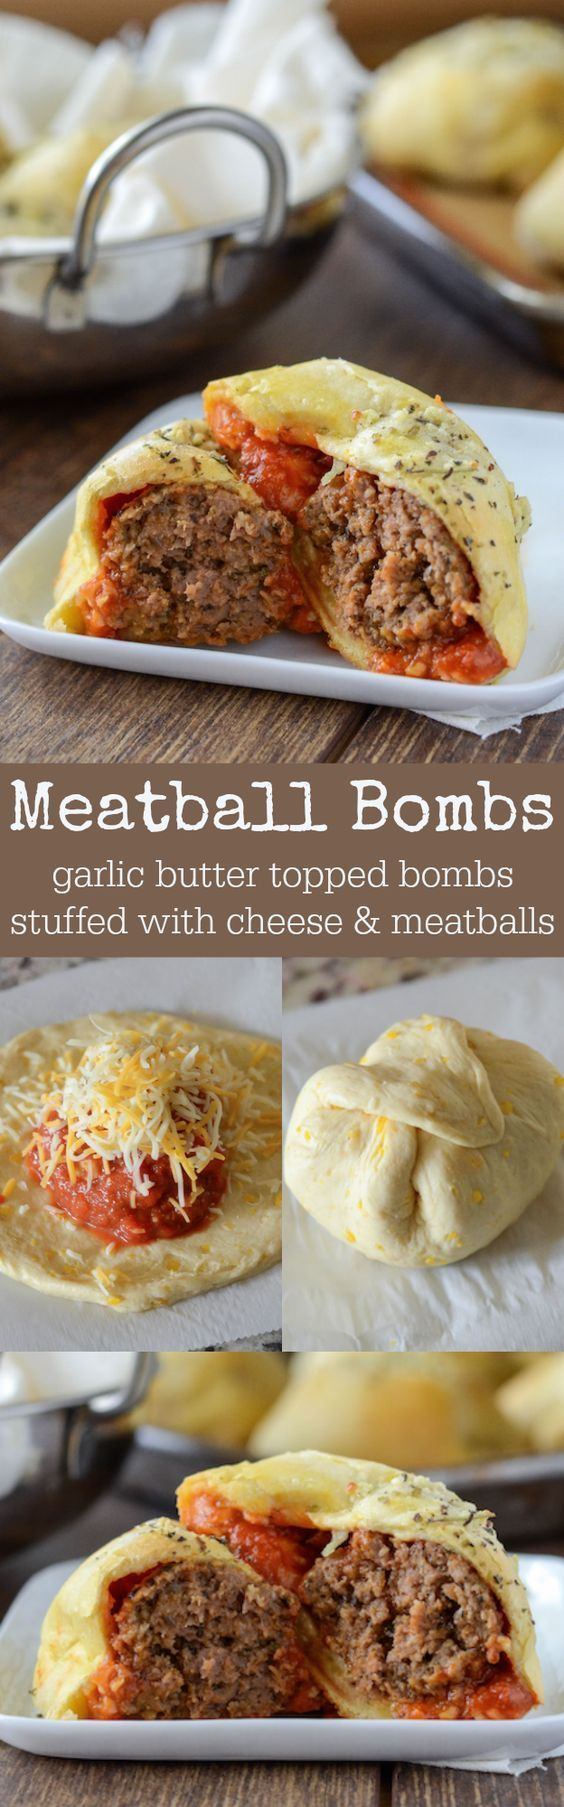 Meatball Bombs – garlic butter topped meatball & cheese stuffed bombs!